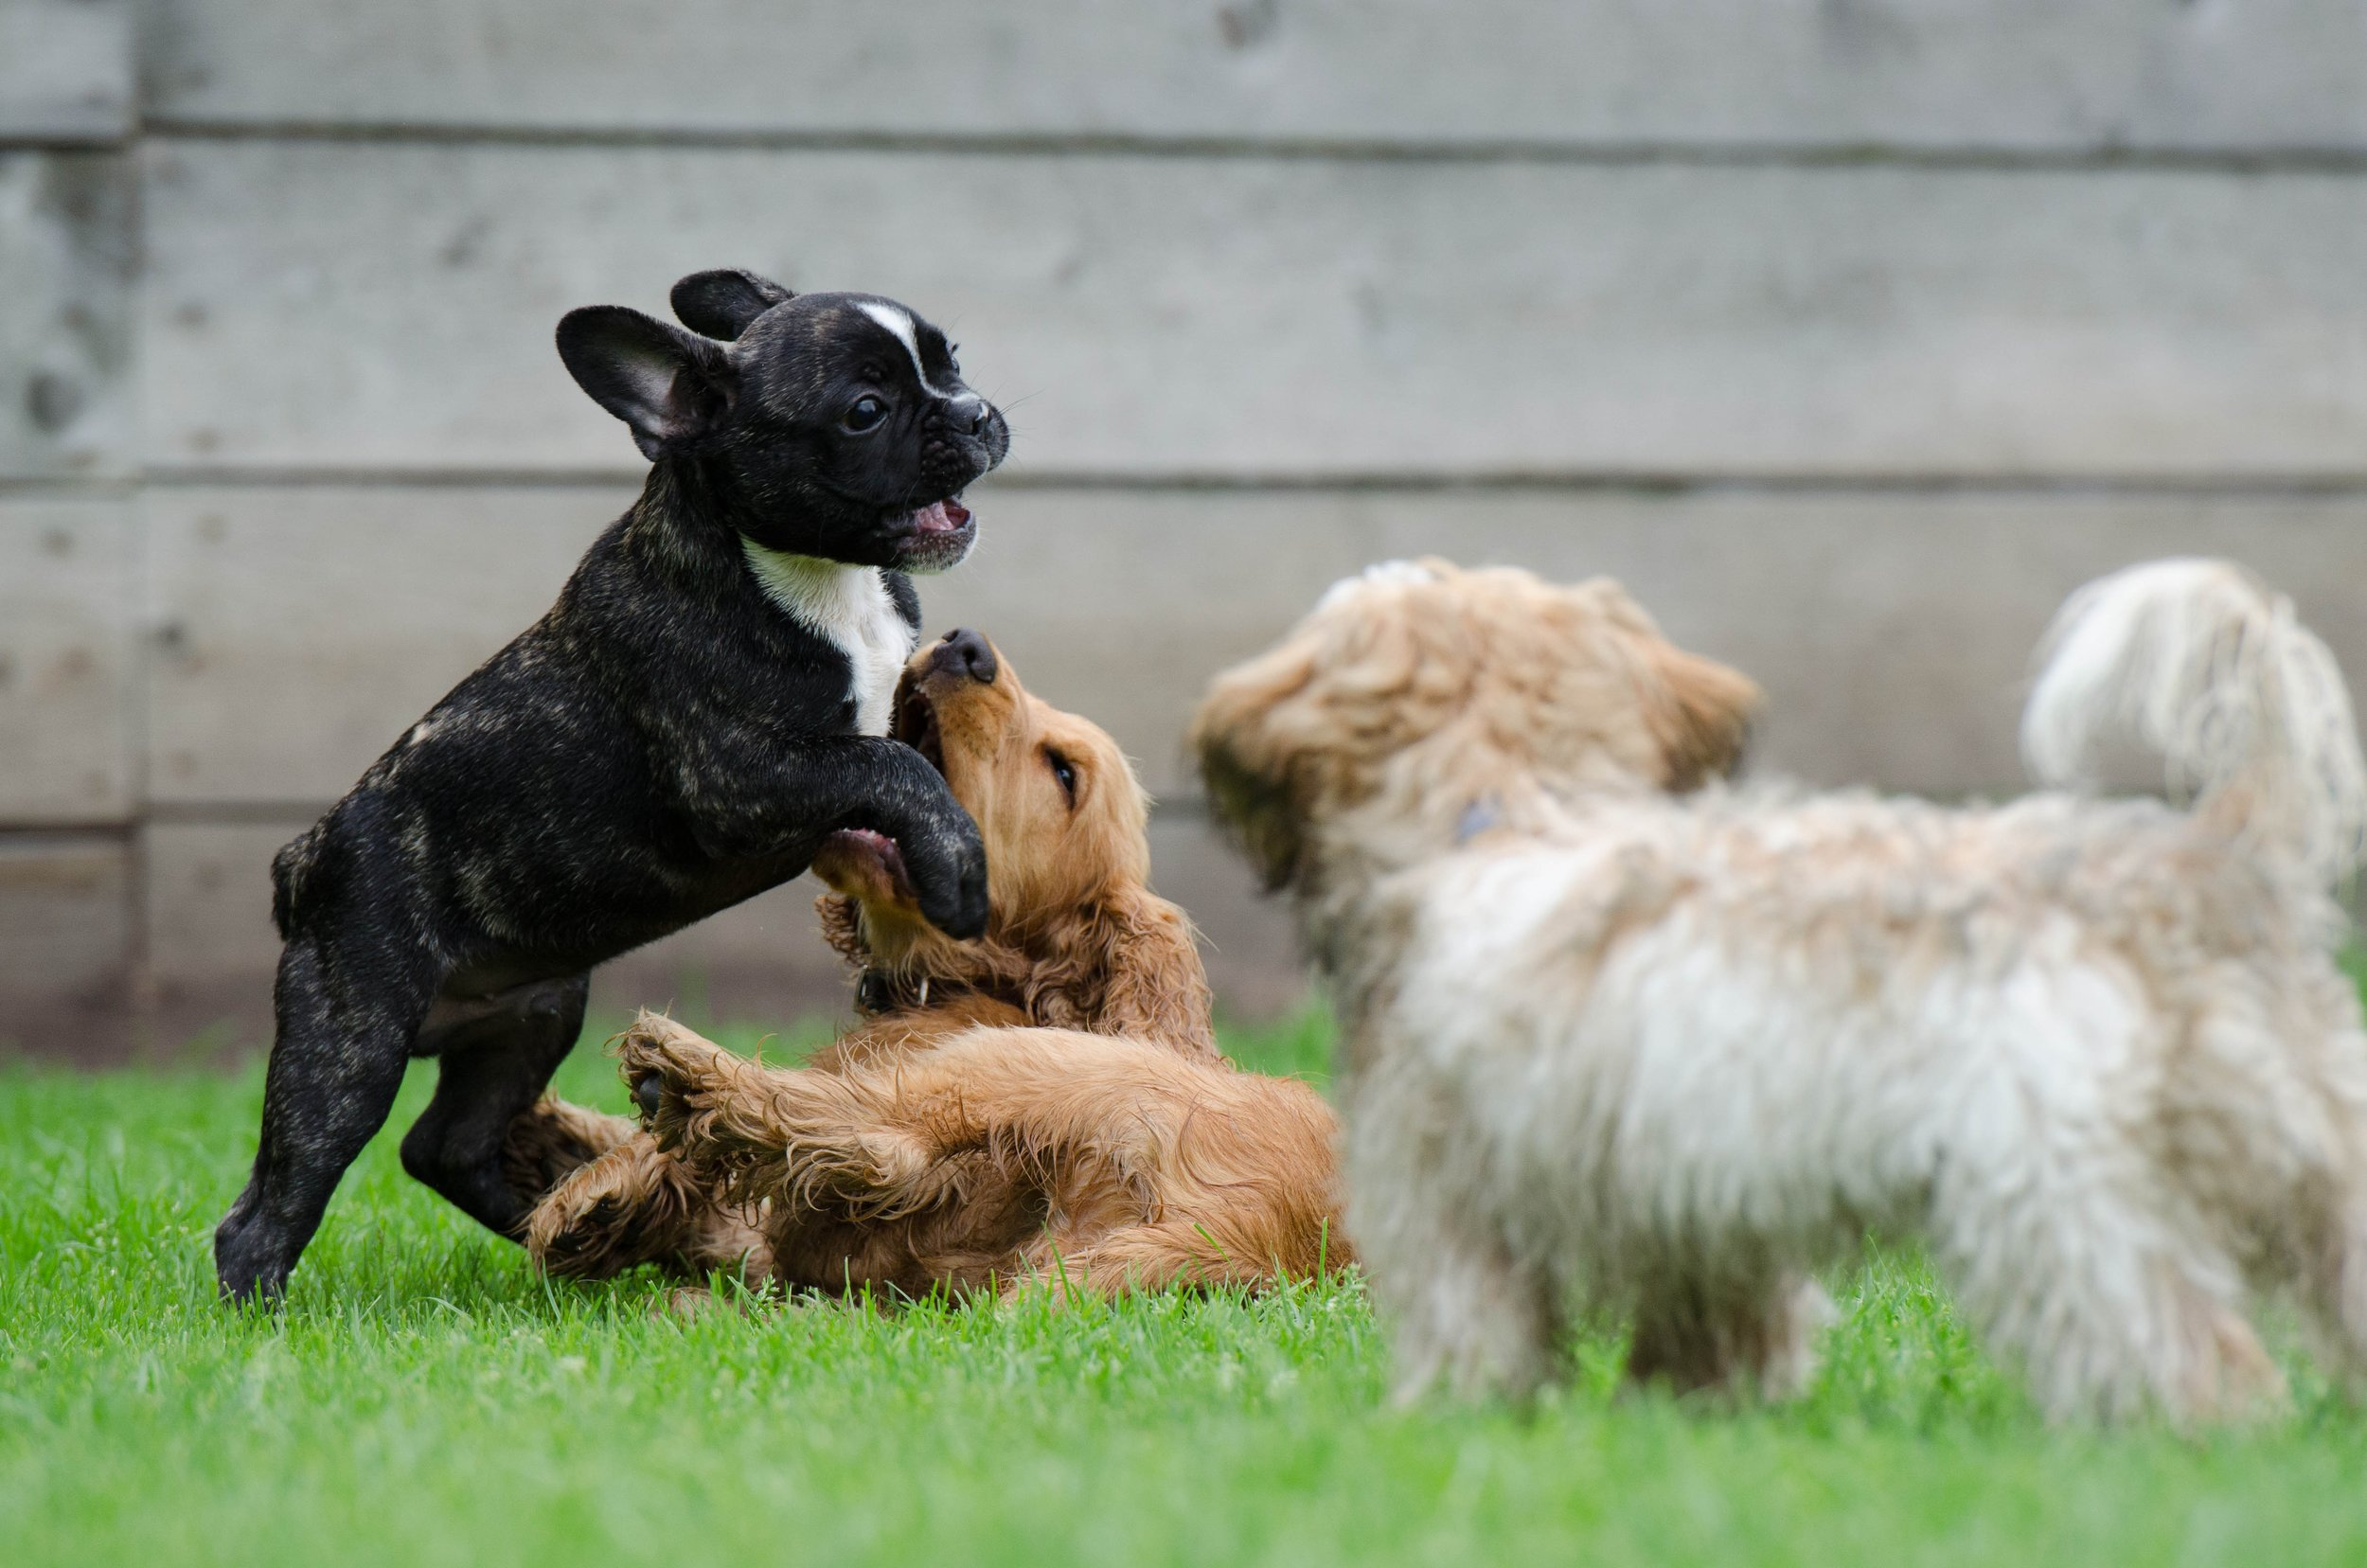 playing-puppies-790638.jpg